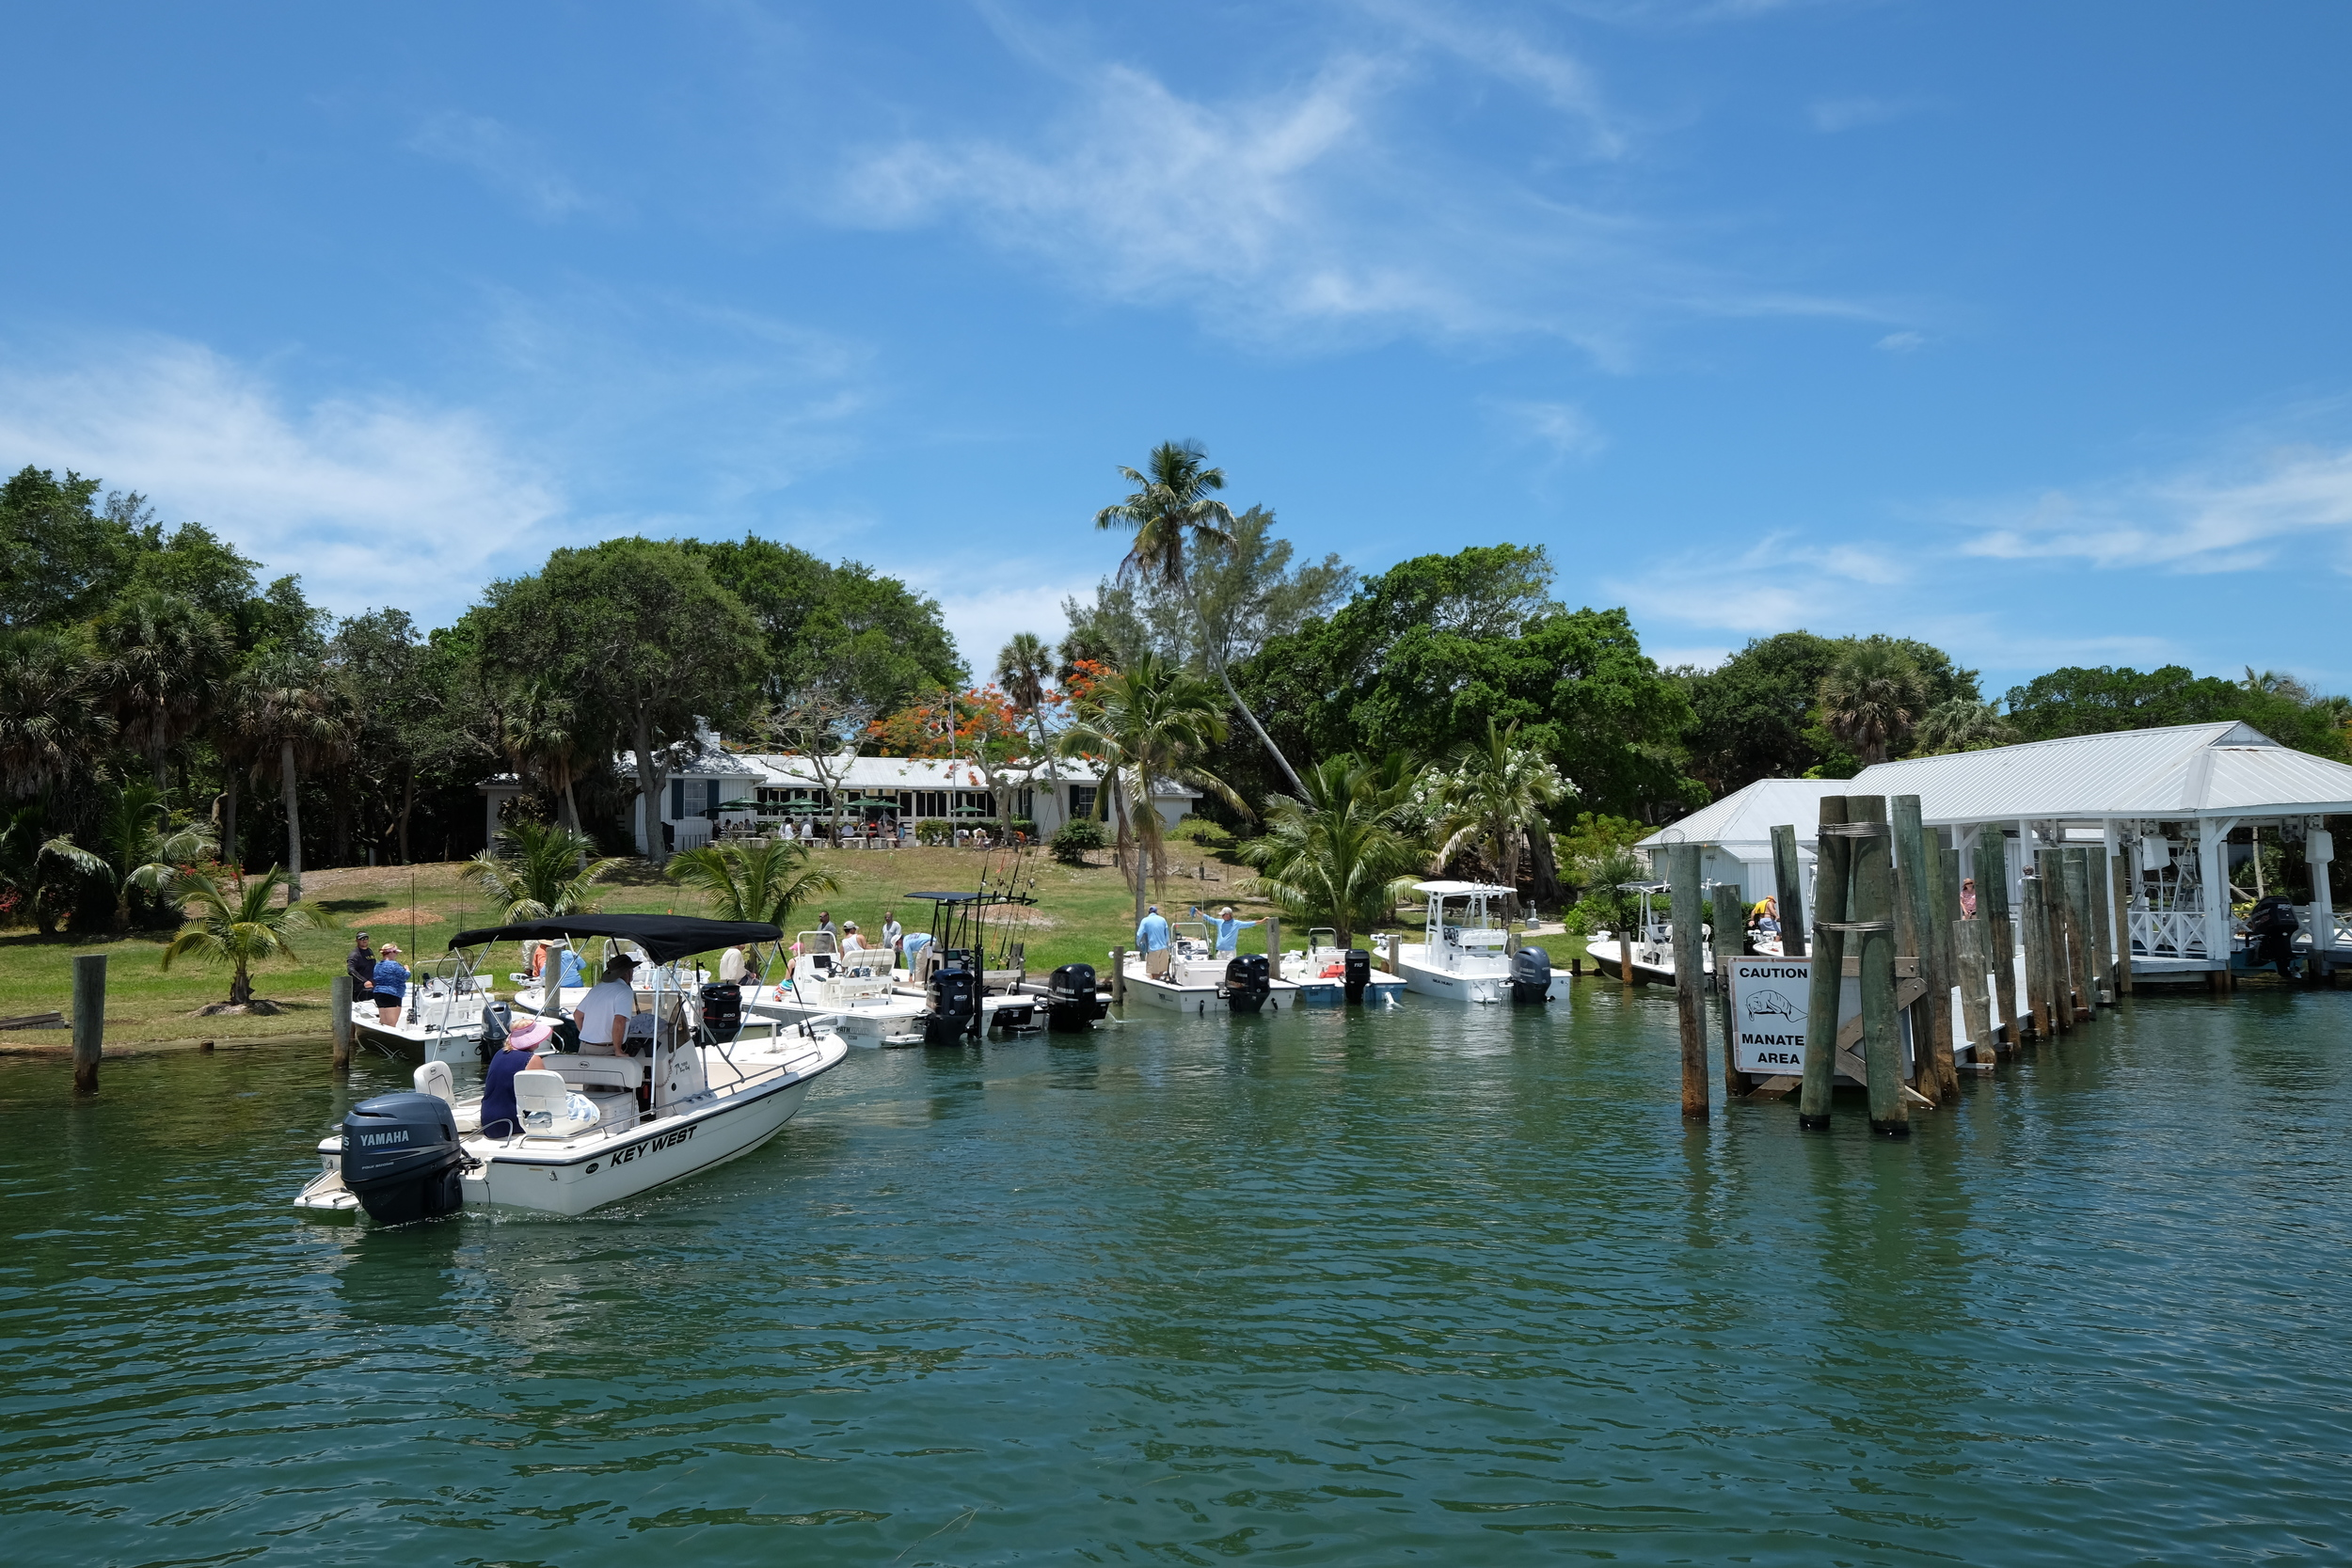 The only way to arrive on Cabbage Key... by boat!